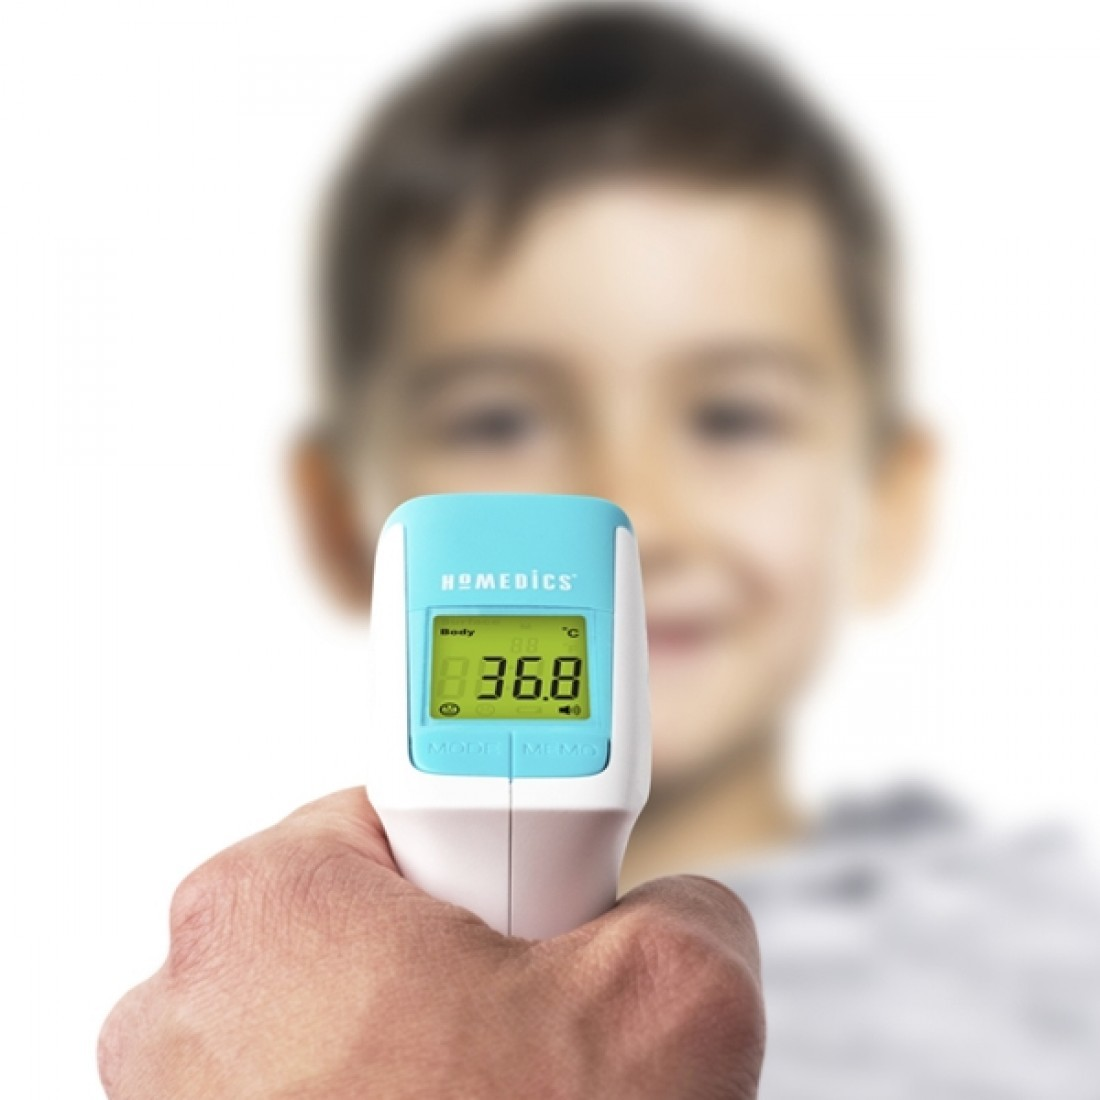 Homedics Contactless Infrared Body Thermometer TE-350-EU